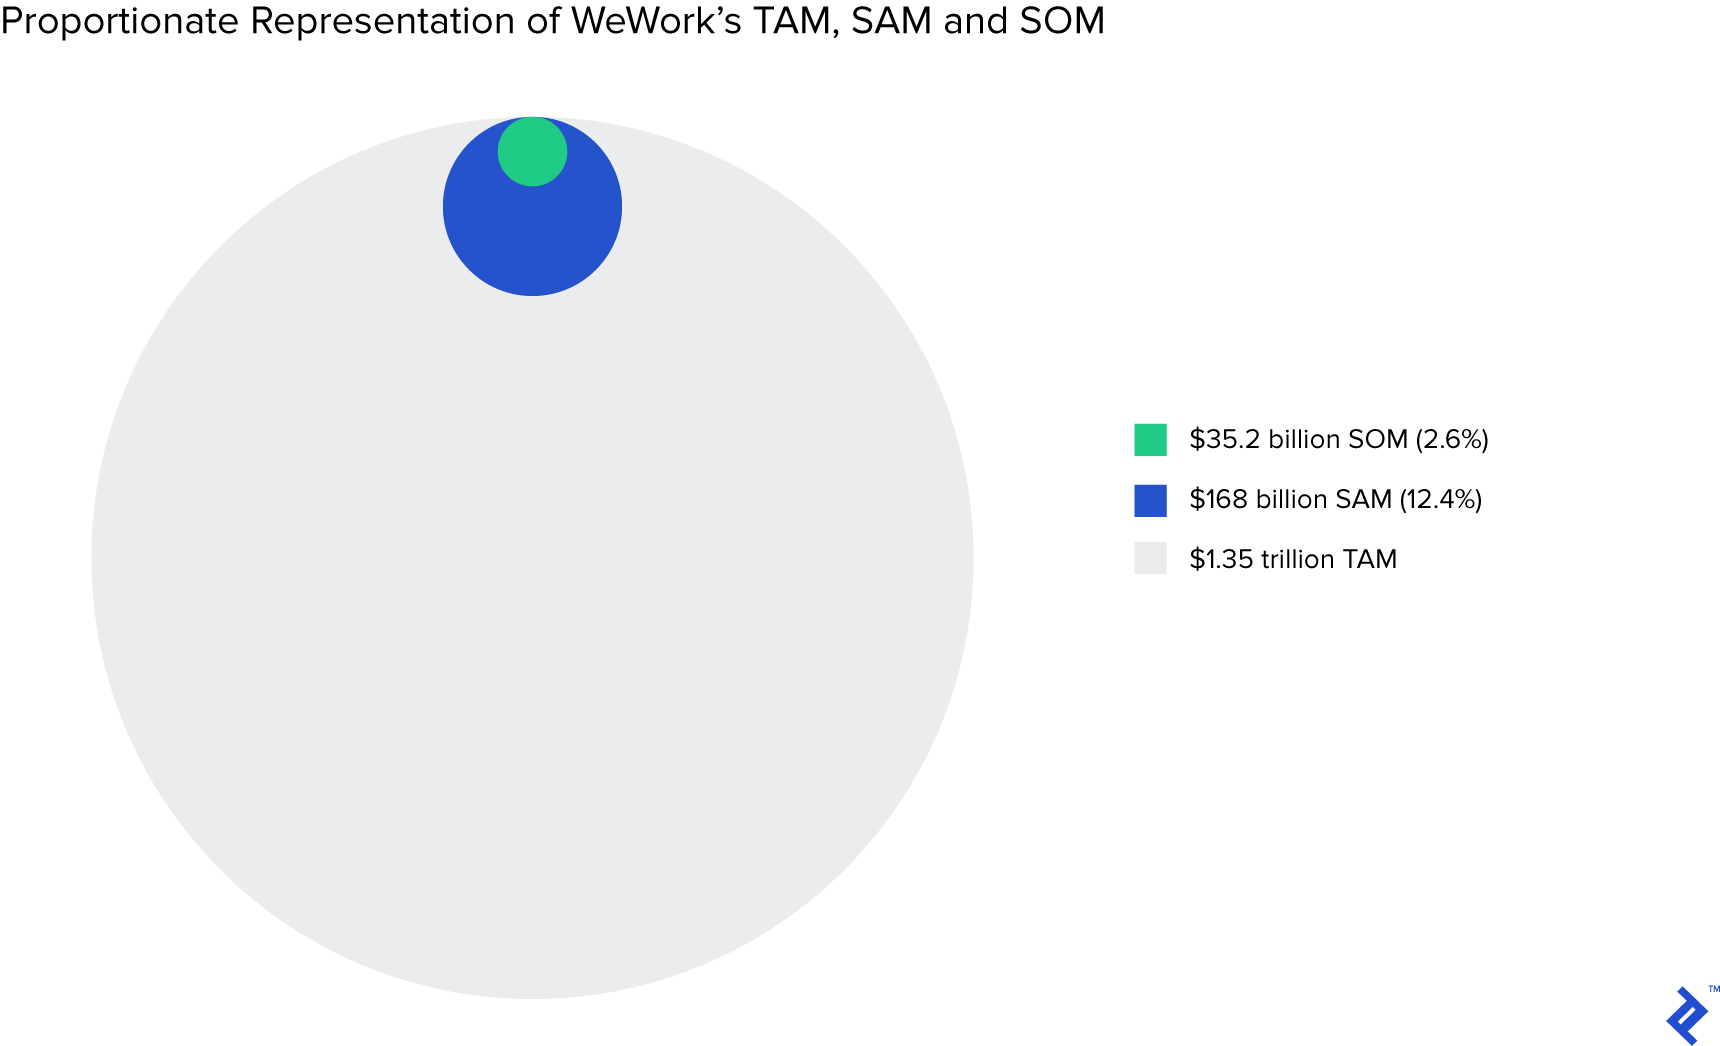 Proportionate representation between a TAM, SAM, and SOM calculation